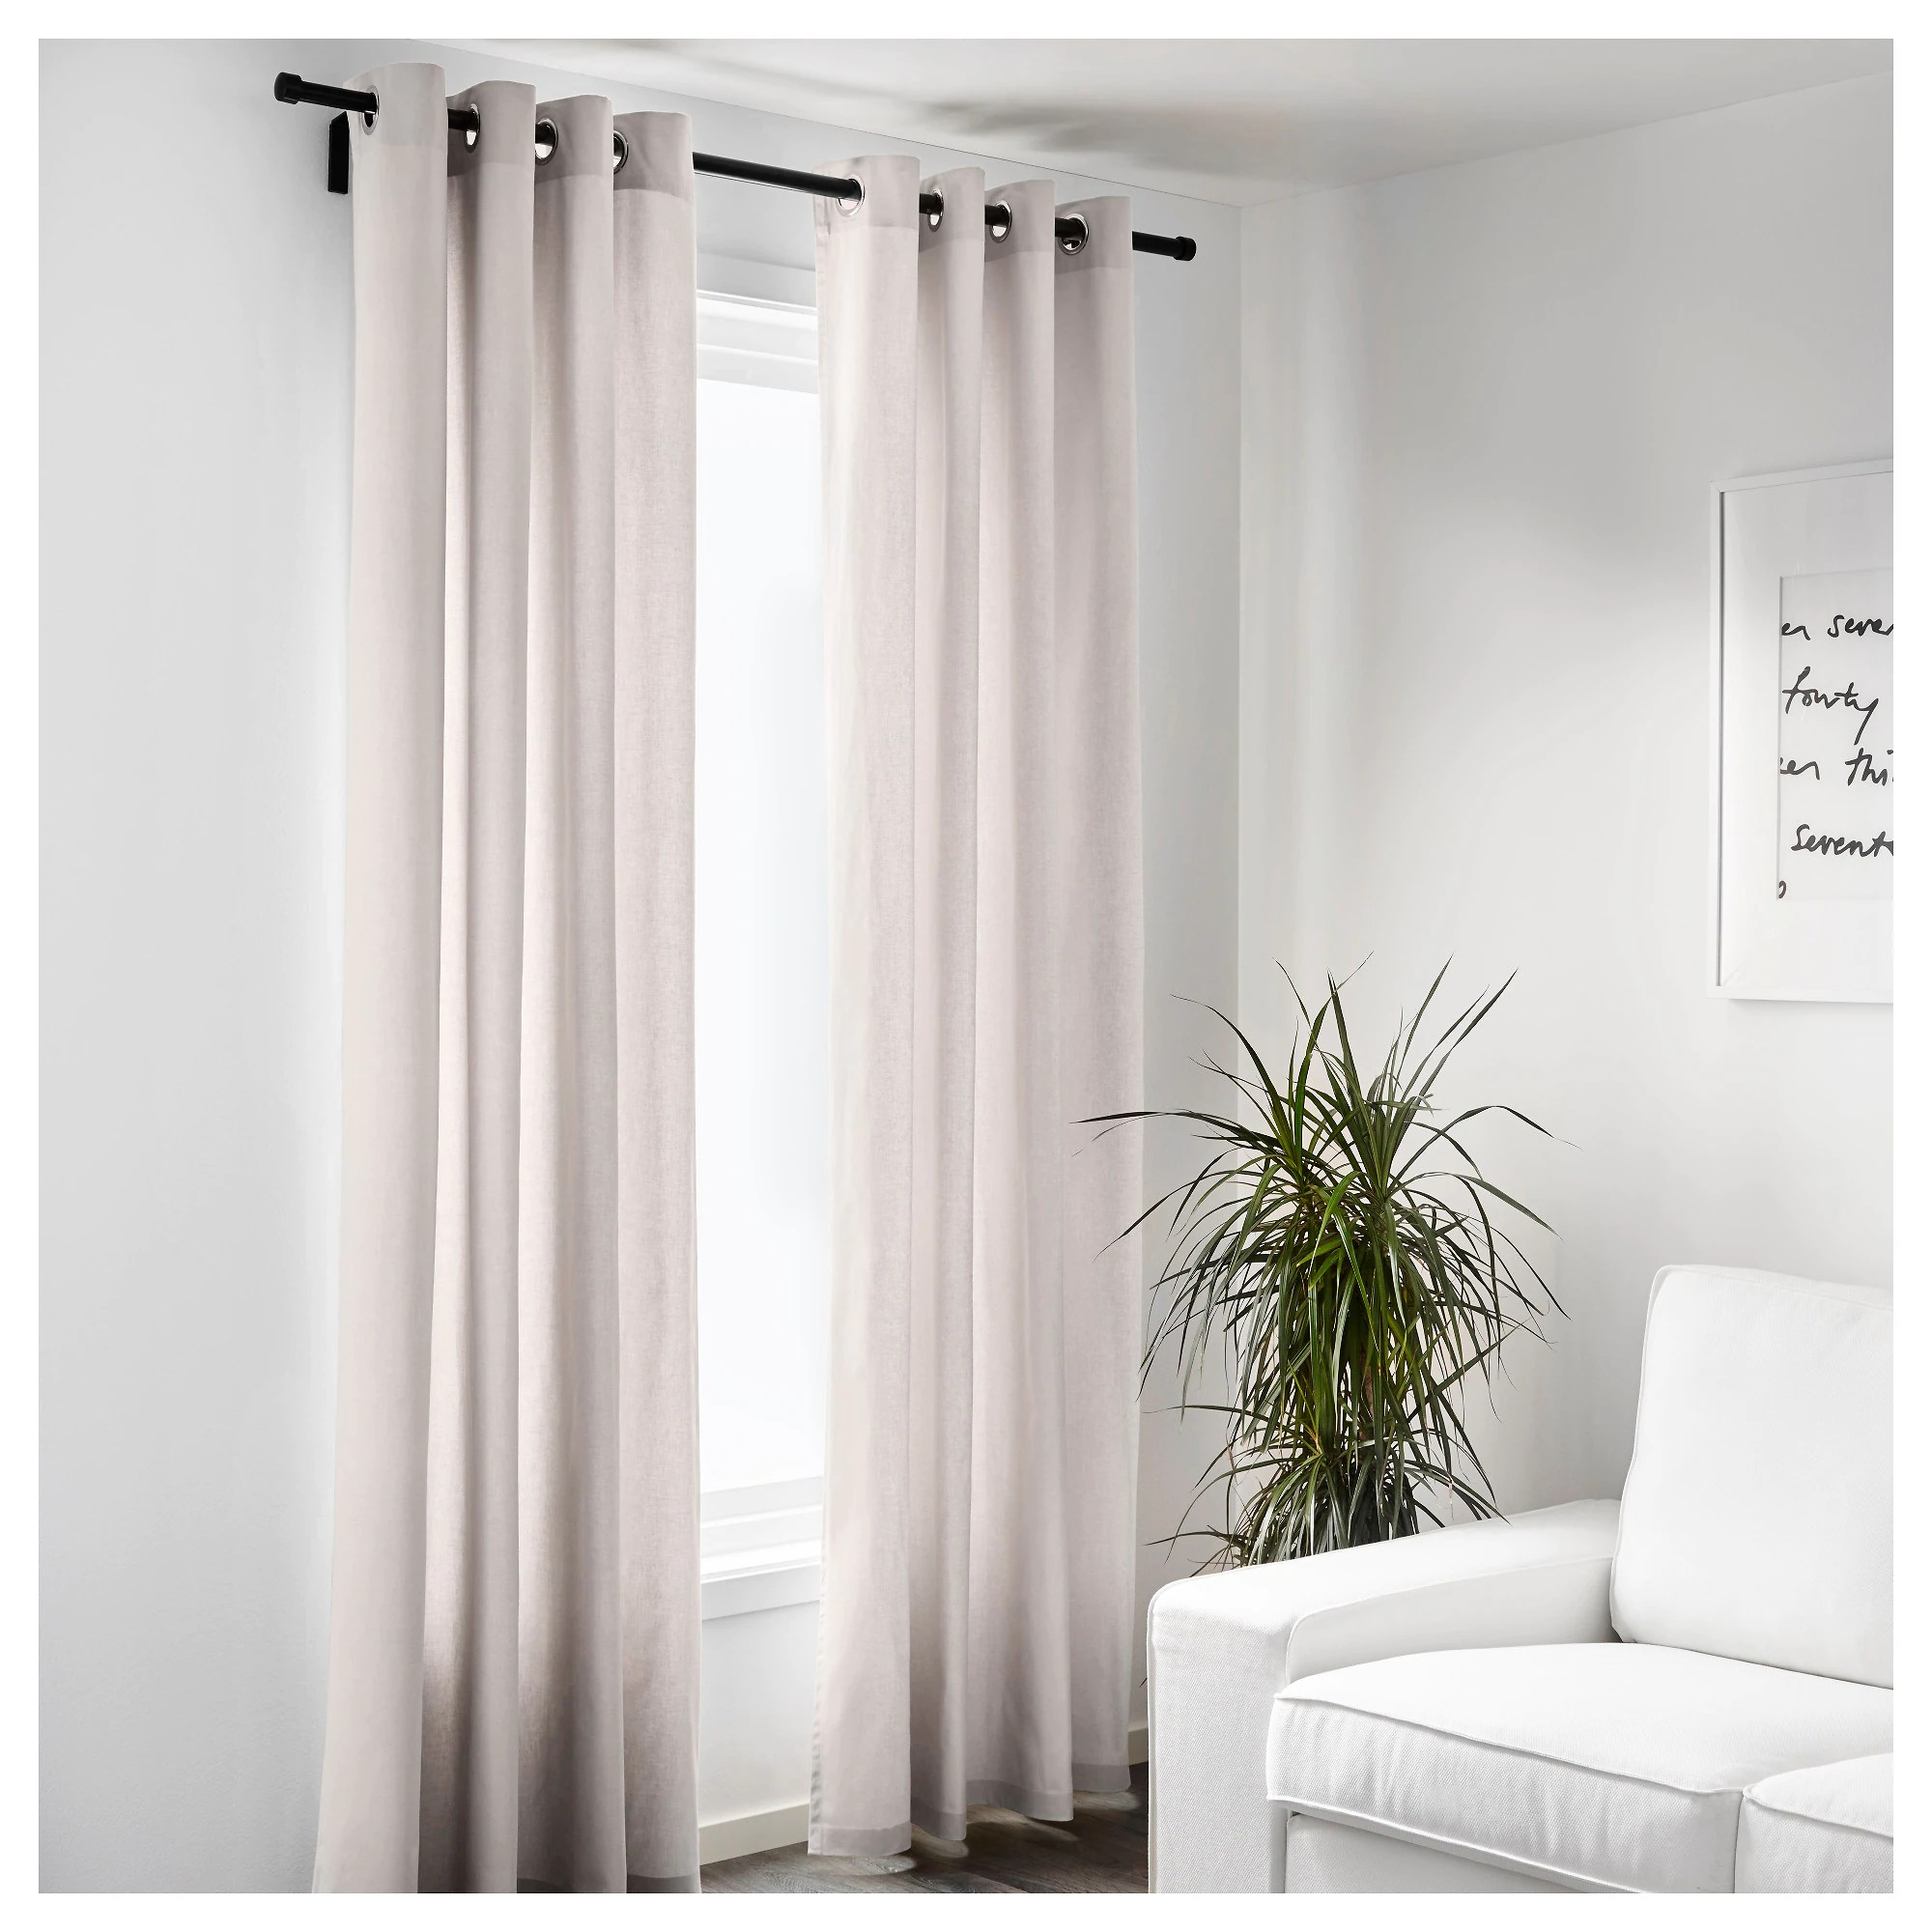 "MERETE Curtains 1 Pair 57x98 "" IKEA"